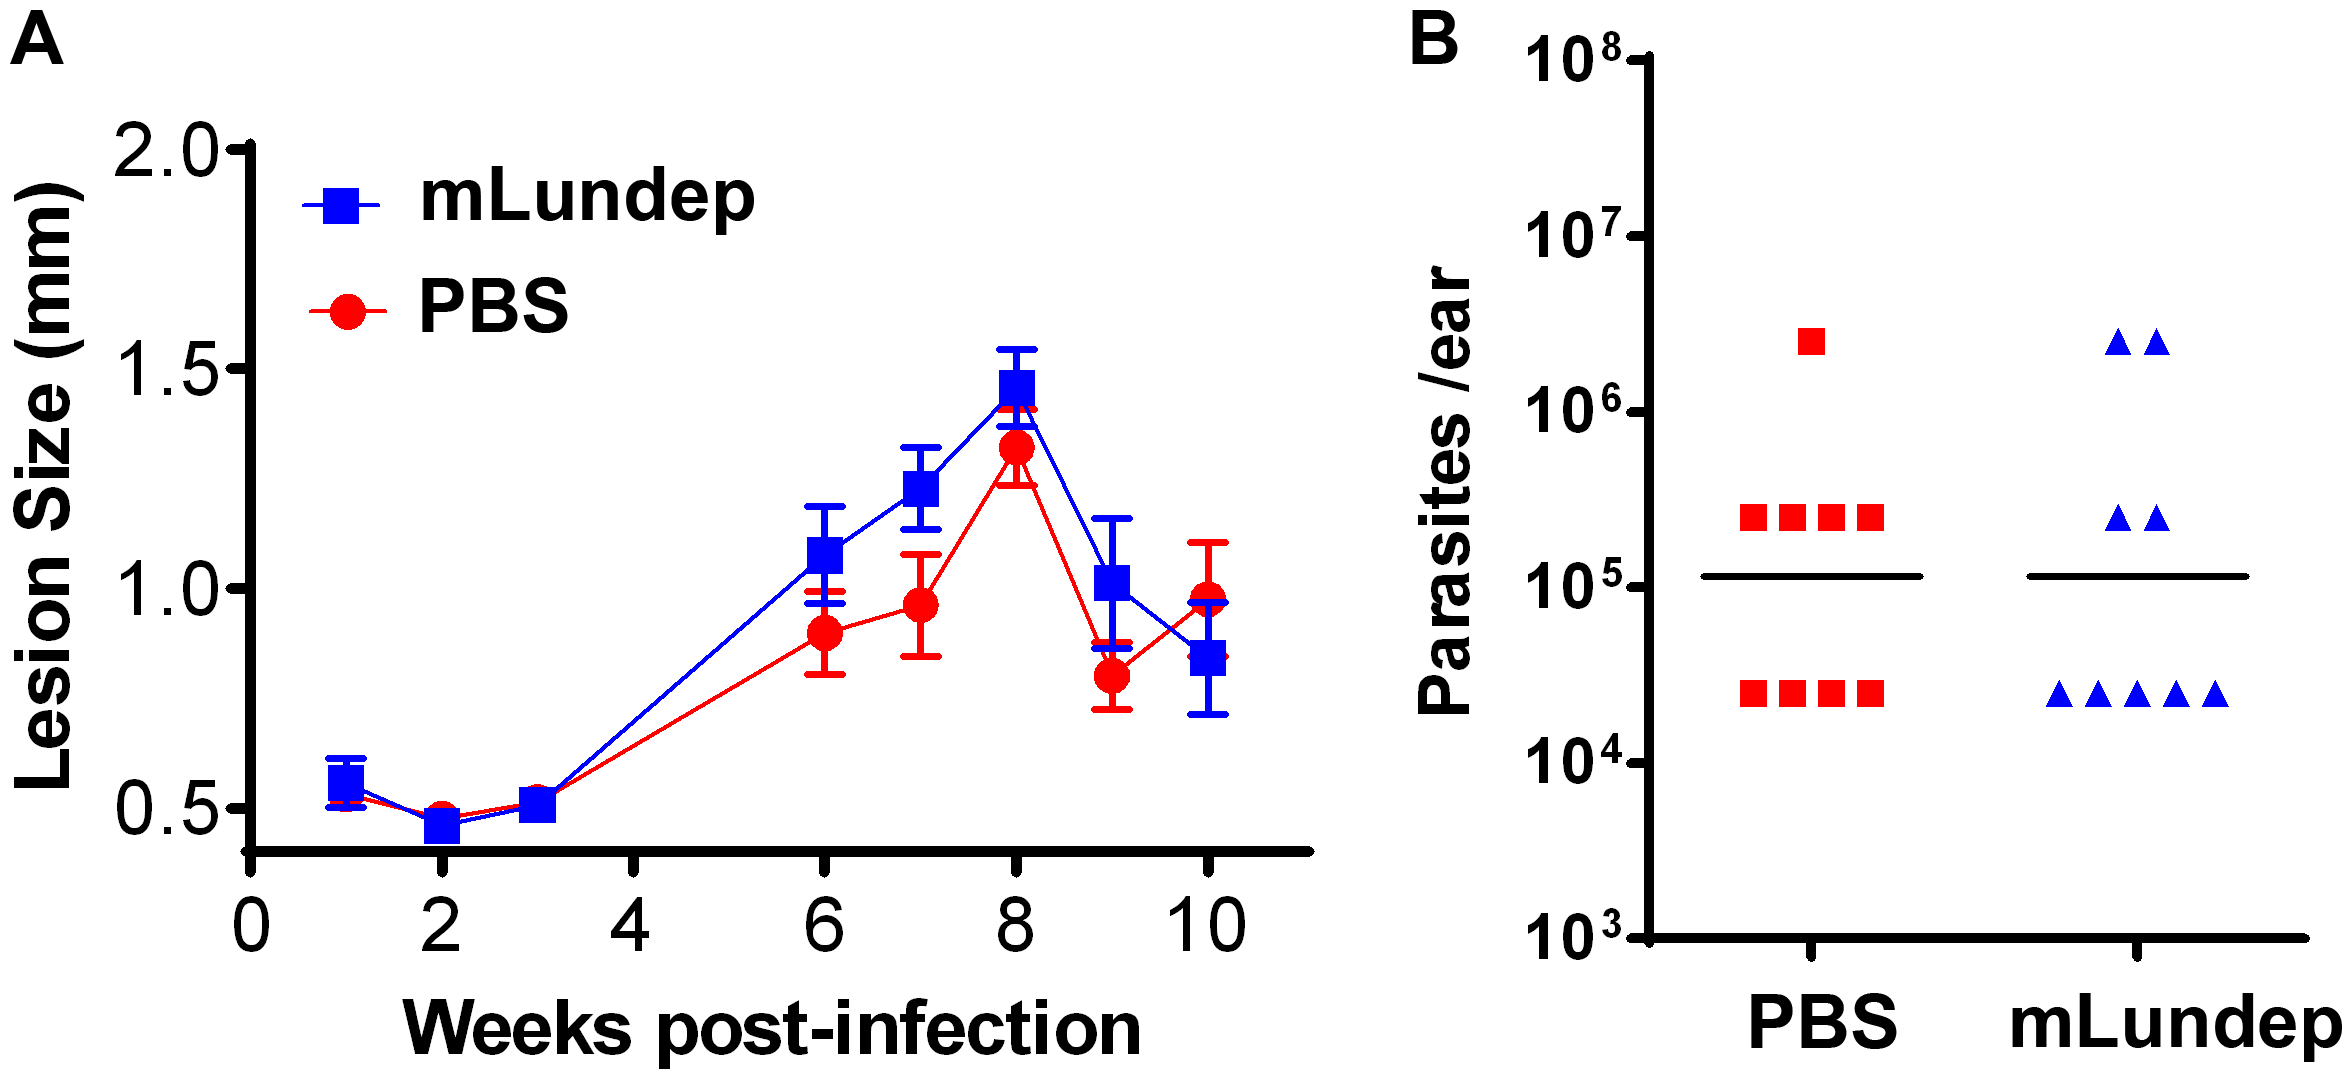 Mutation in the recombinant Lundep (rLundep) active site abrogates its virulence in a murine cutaneous leishmaniasis model.